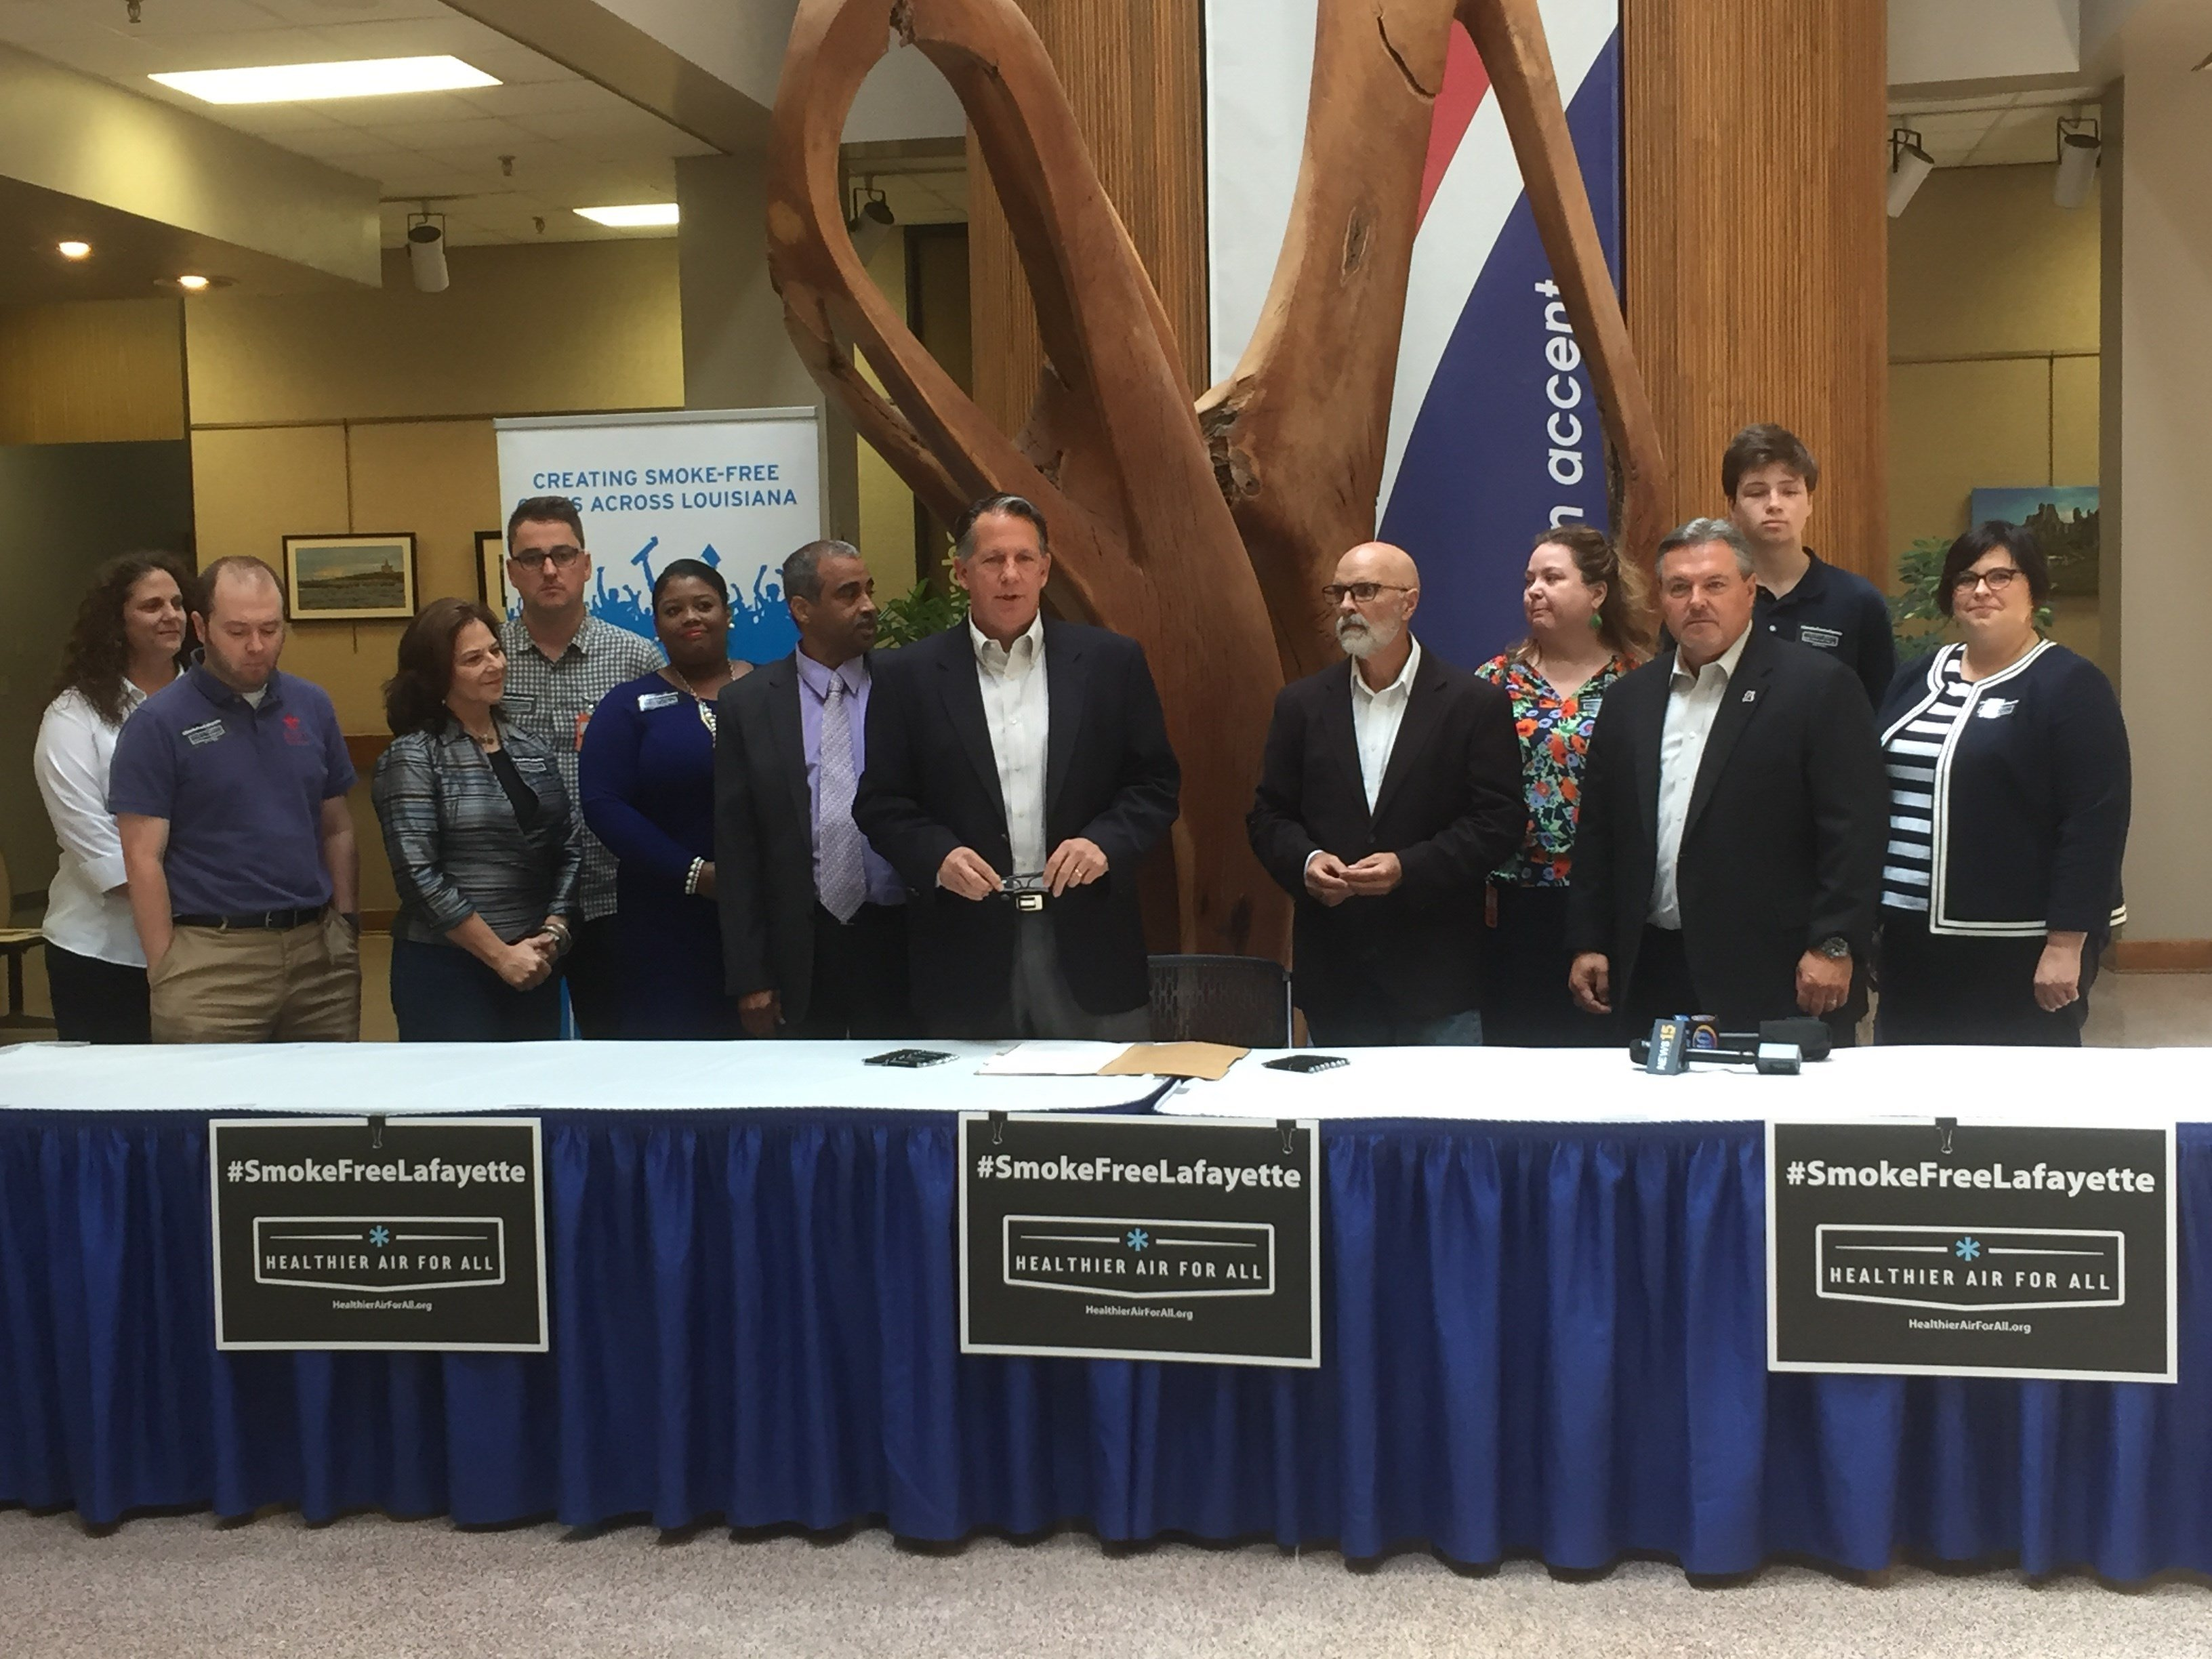 Lafayette Consolidated Government officials and staff, members of the media and the general public were invited to attend the ceremonial signing of the smoking ordinance